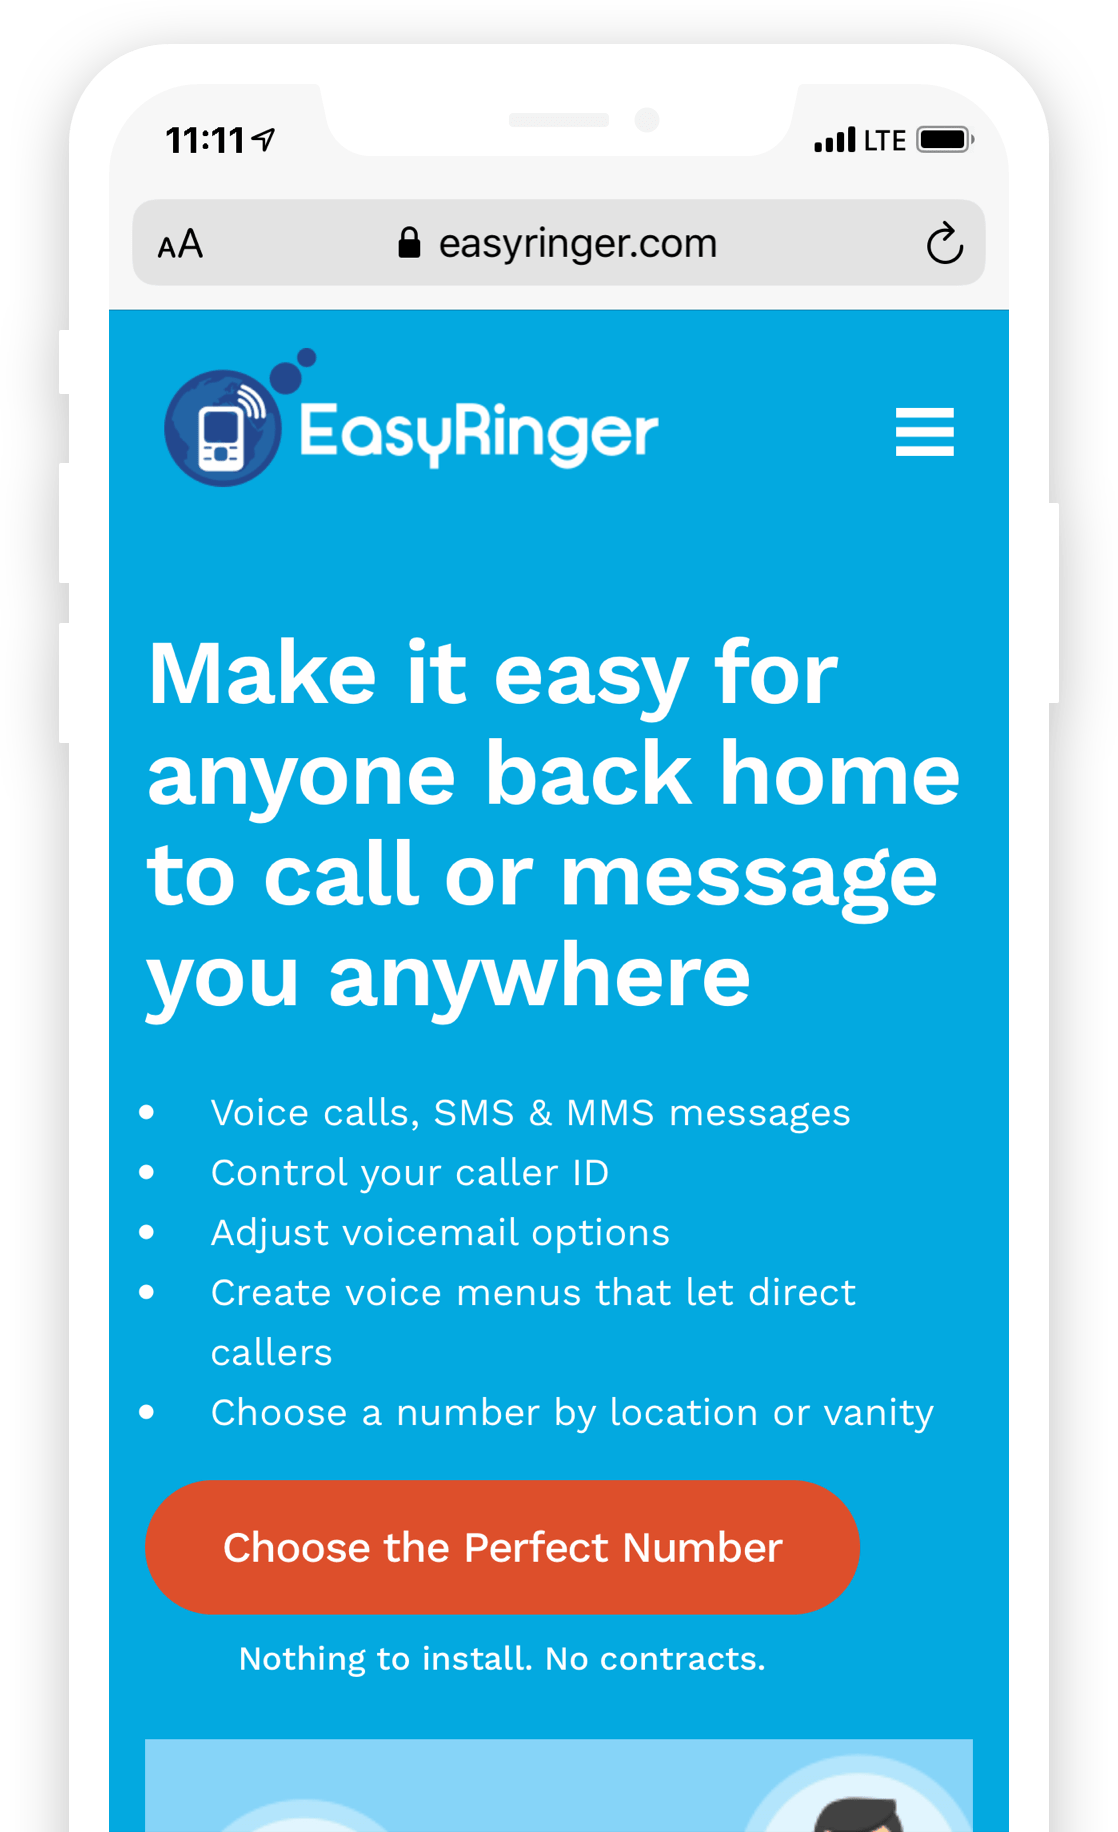 Easyringer Mobile Website